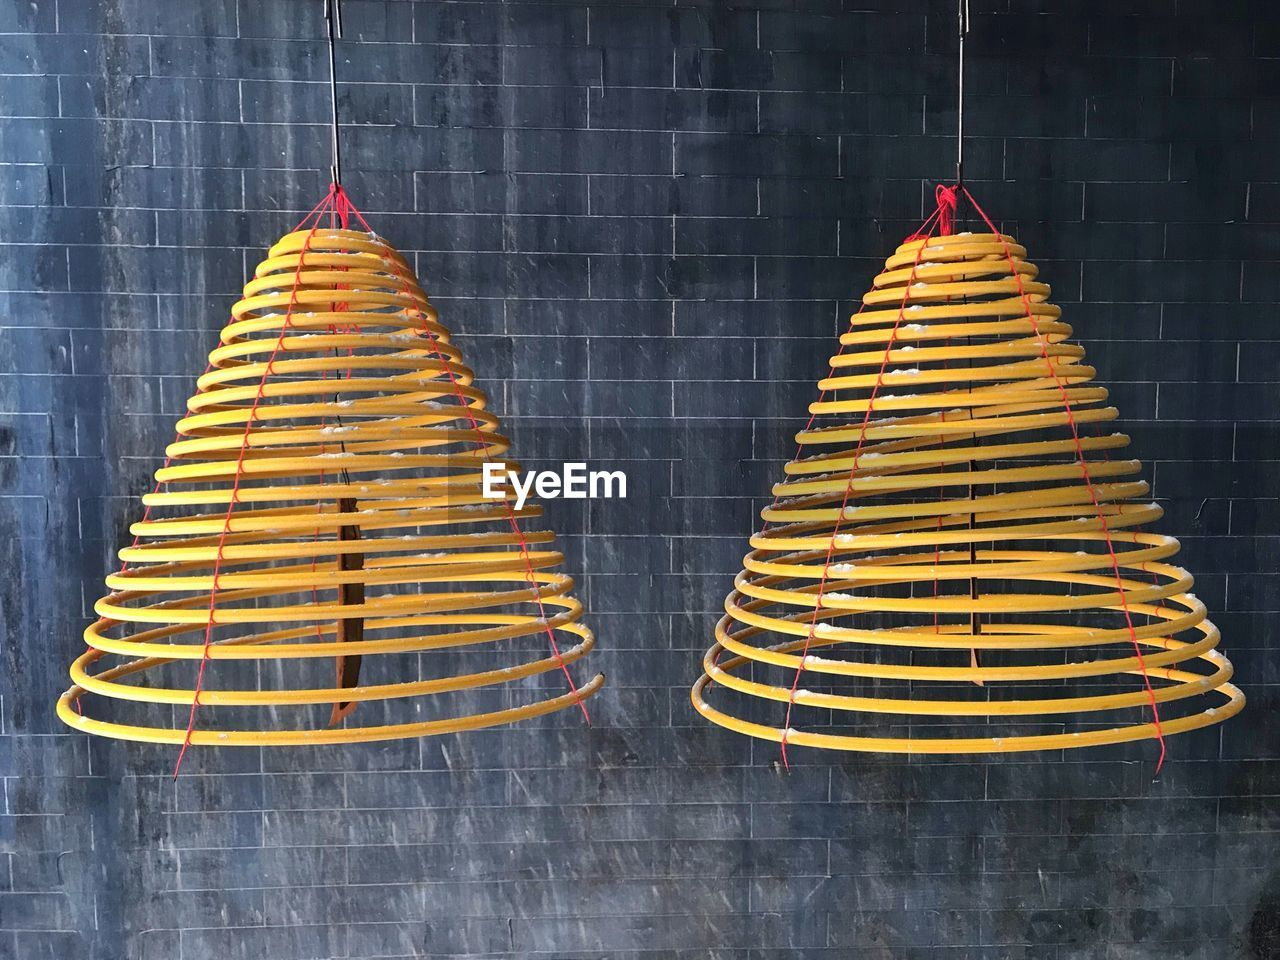 no people, yellow, hanging, in a row, side by side, close-up, cone, indoors, architecture, art and craft, pattern, lighting equipment, built structure, celebration, craft, freshness, wall - building feature